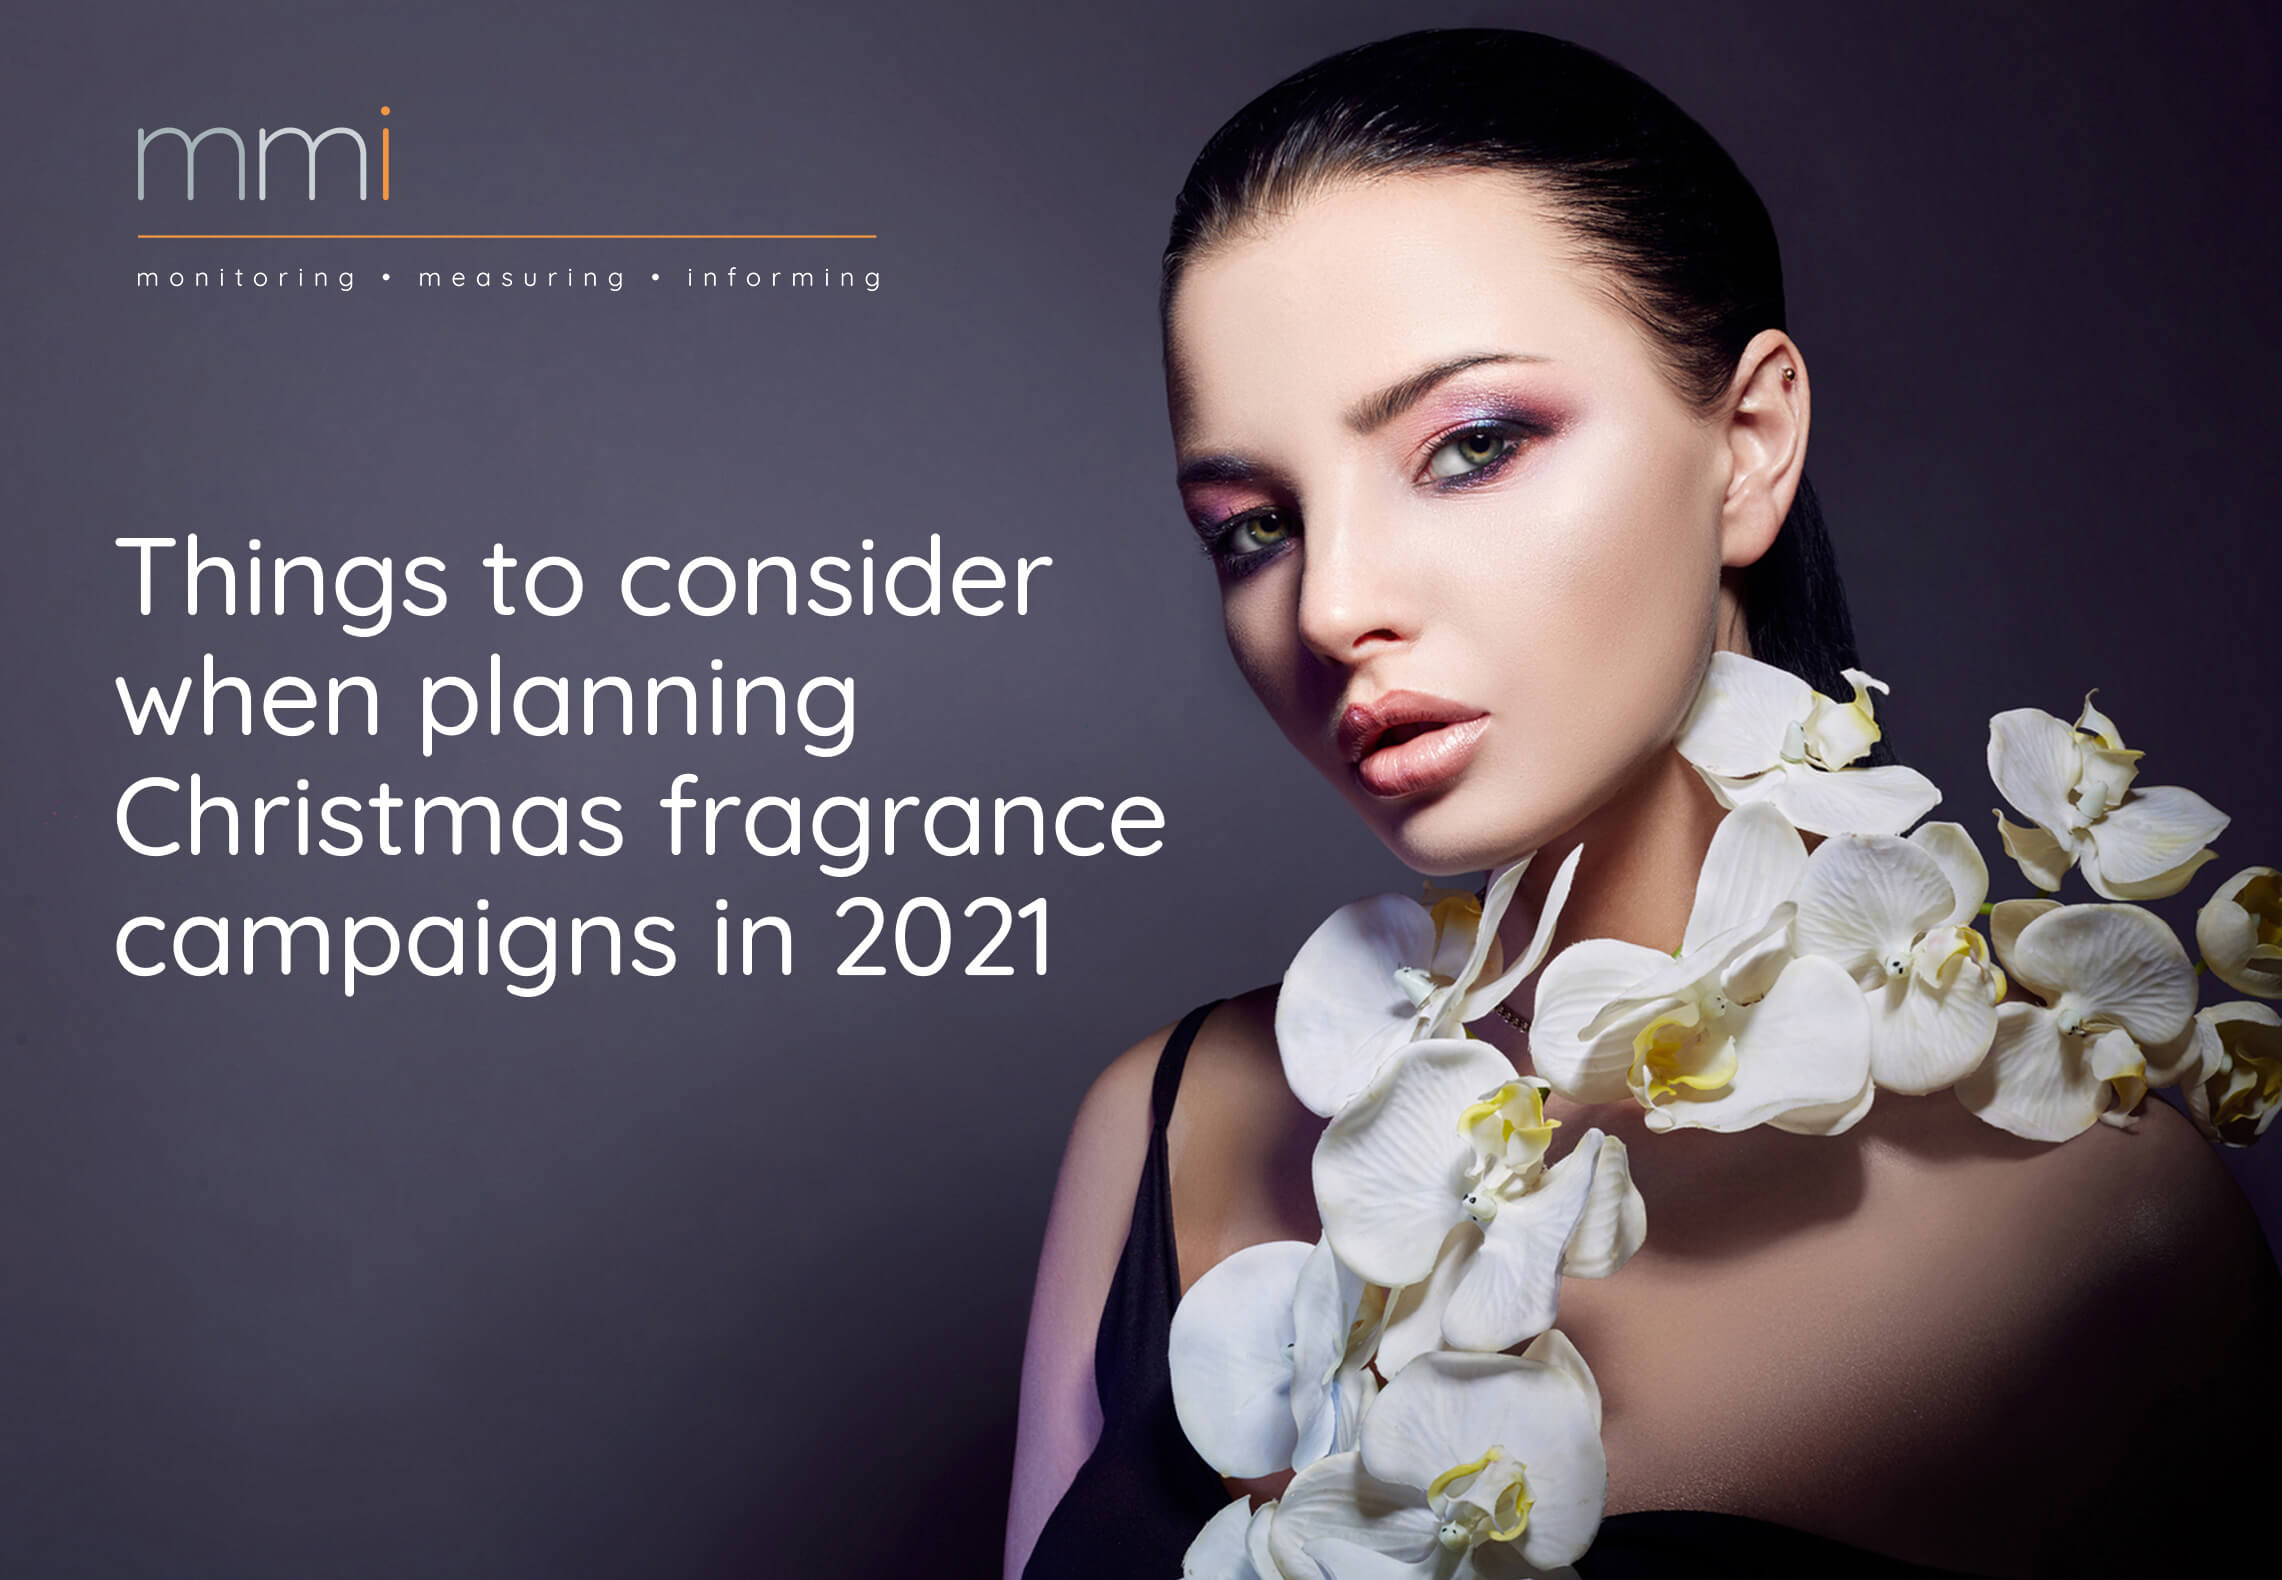 Planning-Fragrance-Campaigns-2021-Page-Thumbnail-V2